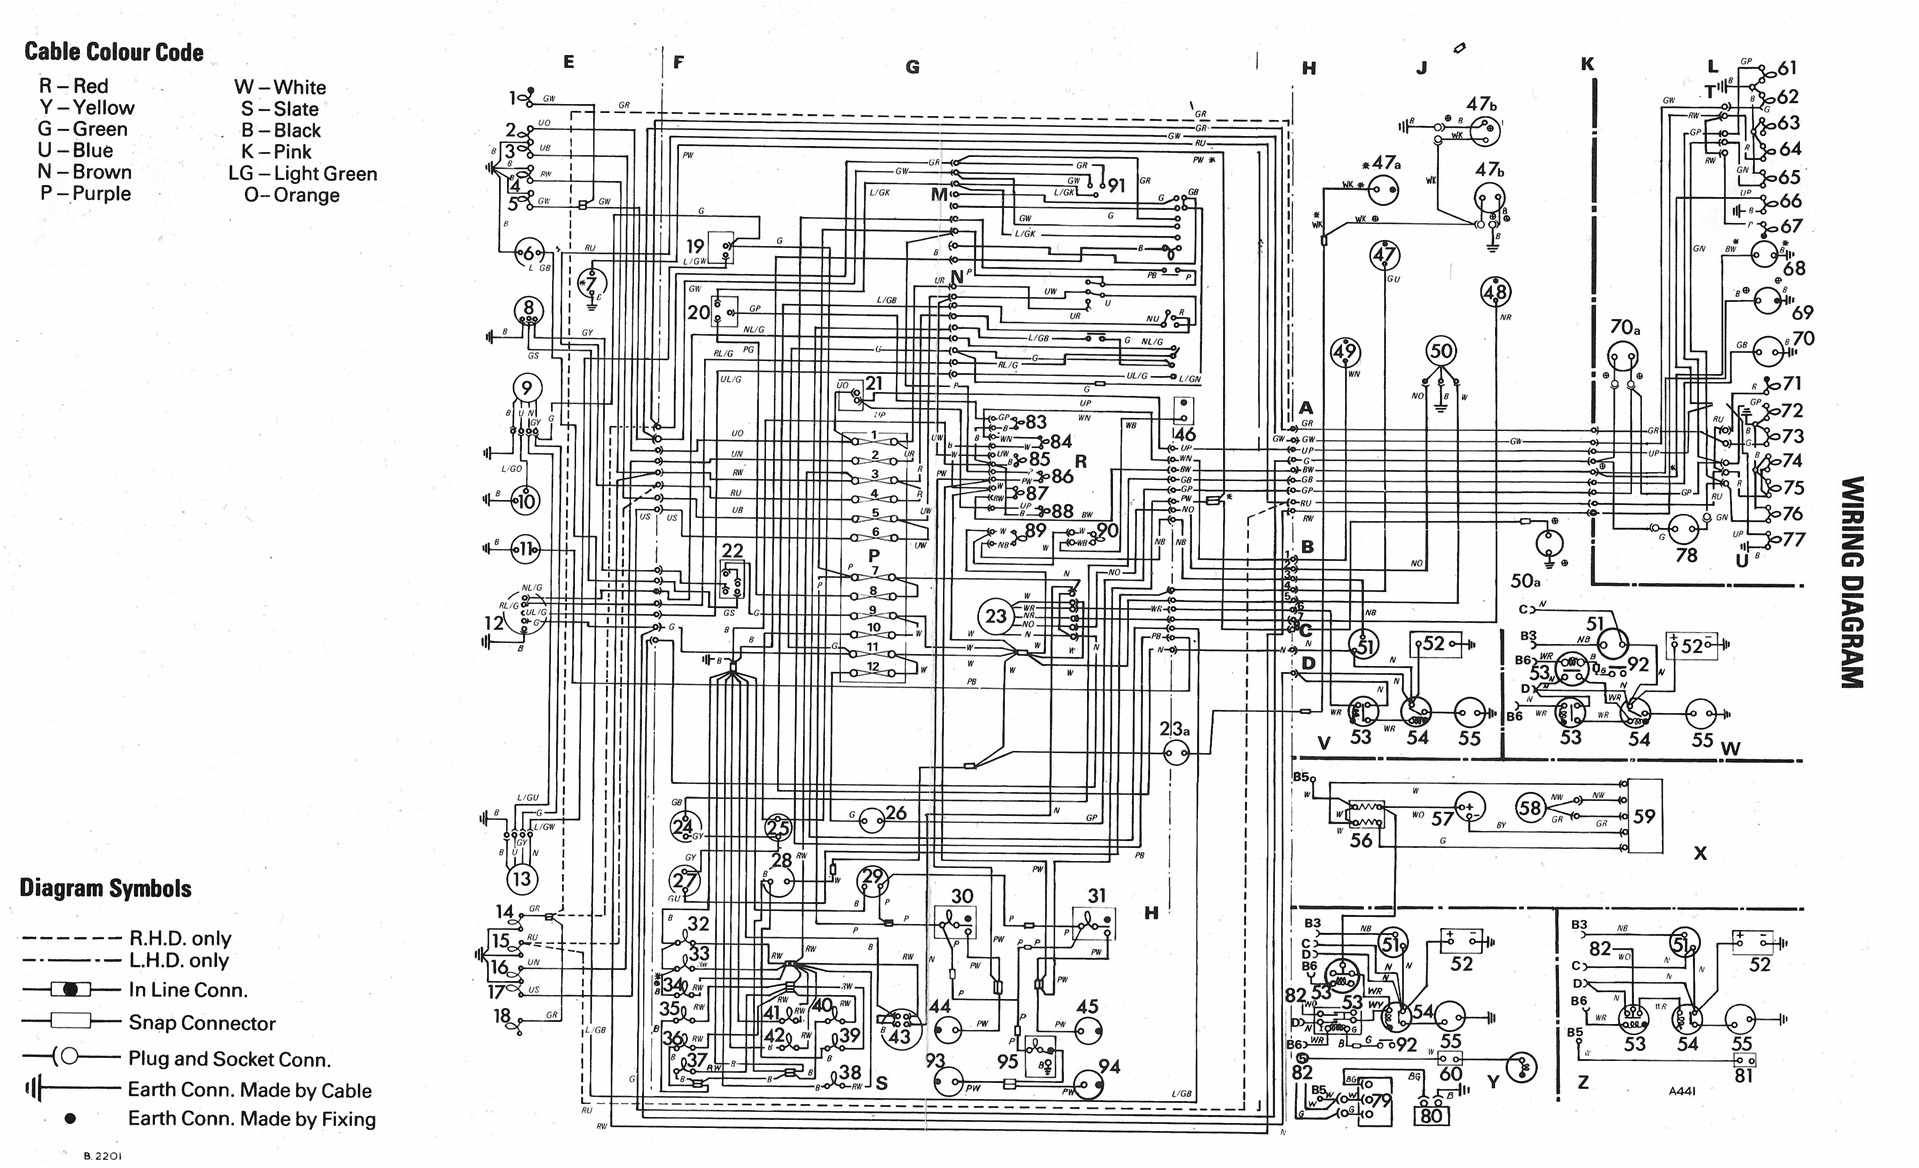 hight resolution of vw golf wiring diagram wiring diagram name vw golf wiring diagram download vw bora wiring diagram download